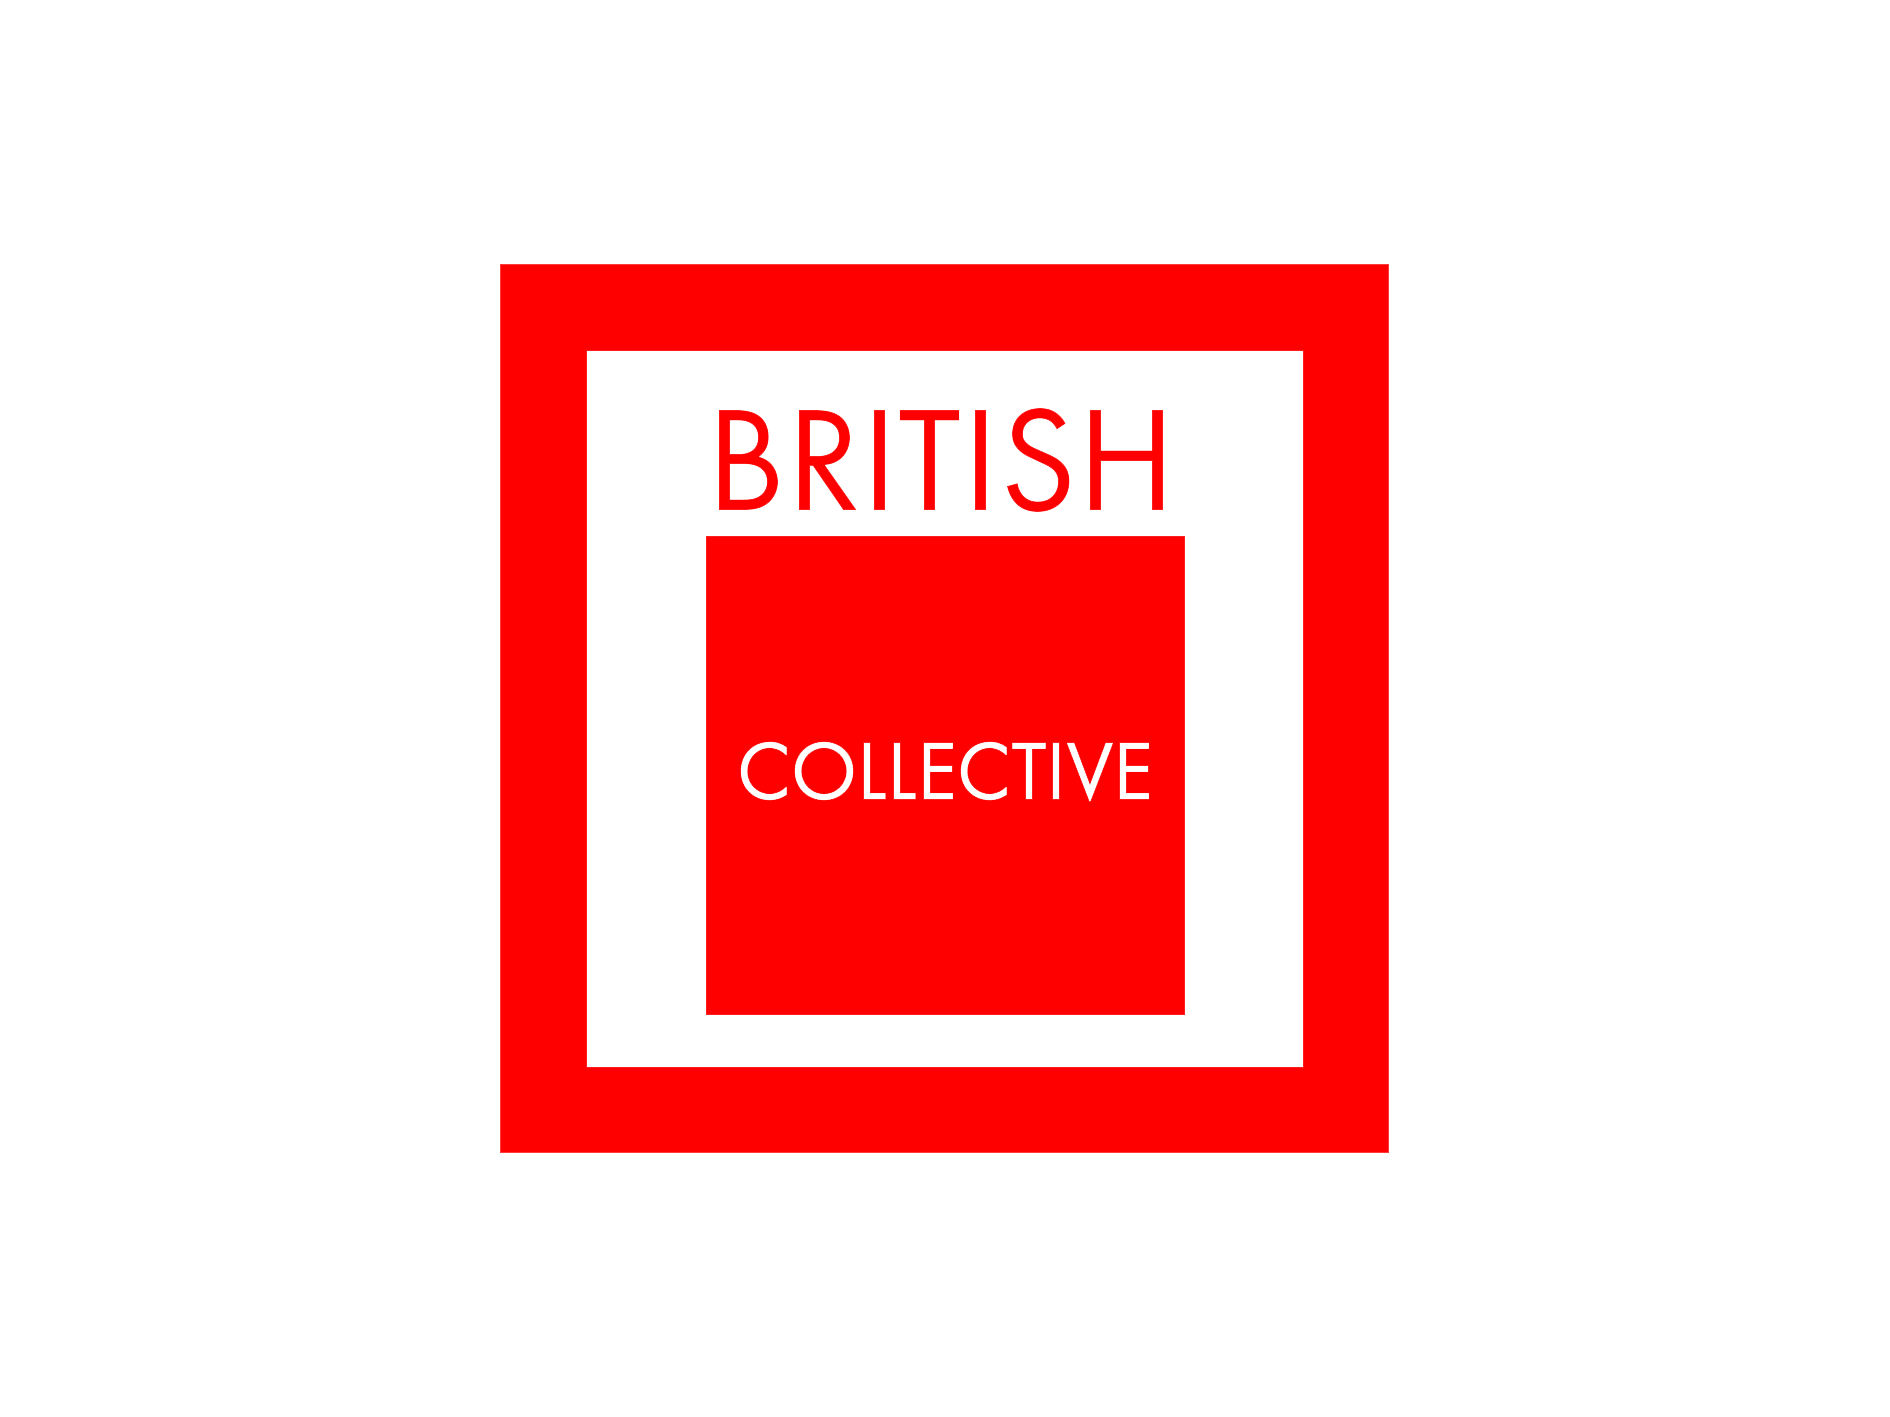 BRITISH COLLECTIVE copy.png